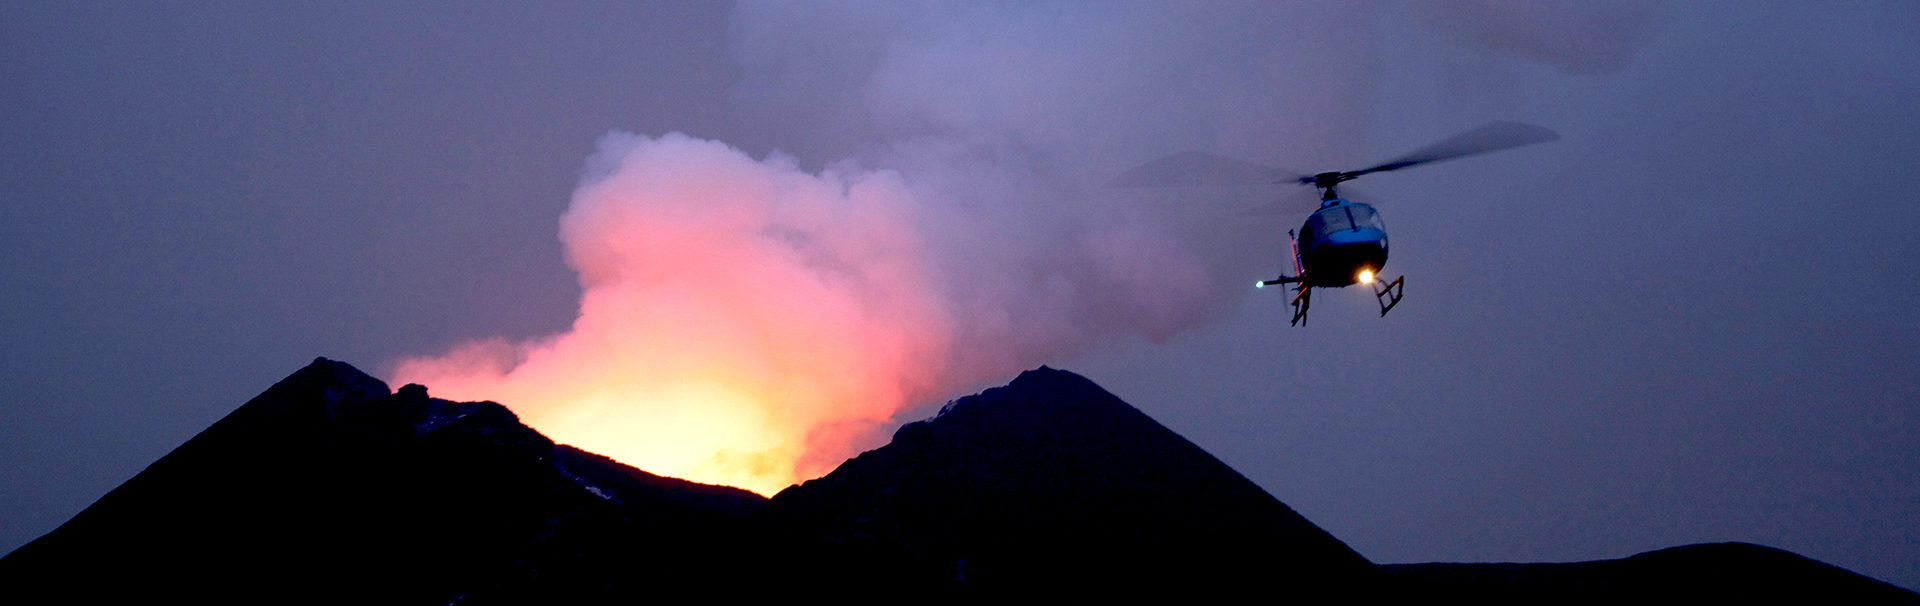 Mount Nyiragongo, Virunga @ Richard Roberts